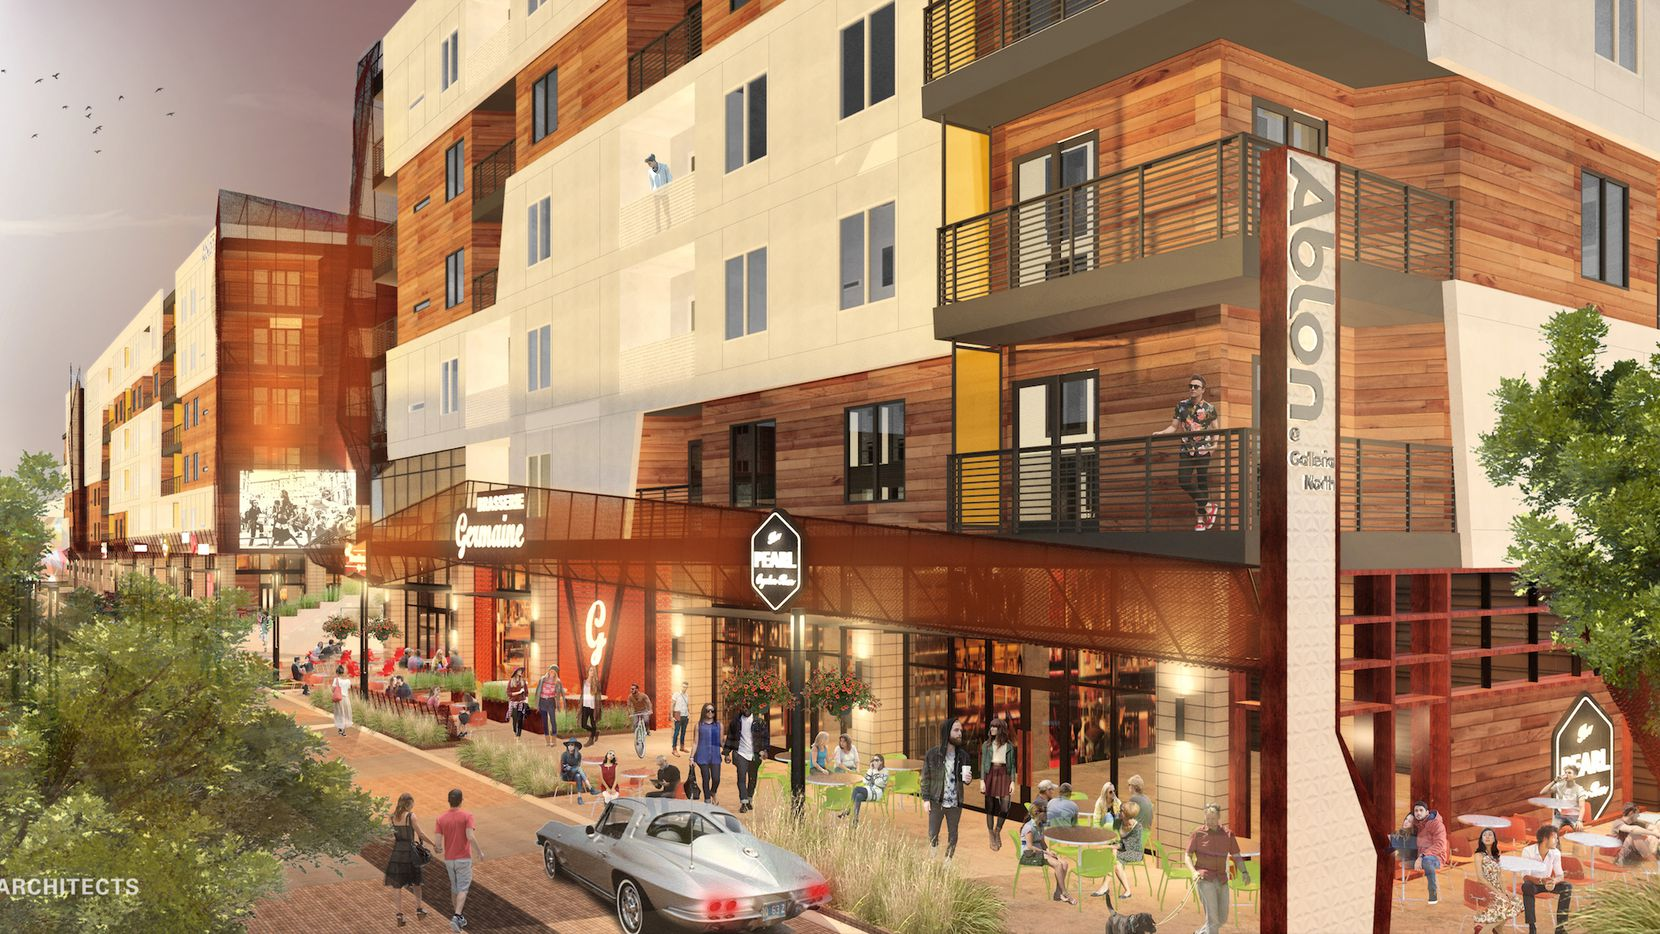 The Ablon at Galleria Muse development on Alpha Road will include new apartments and retail development.